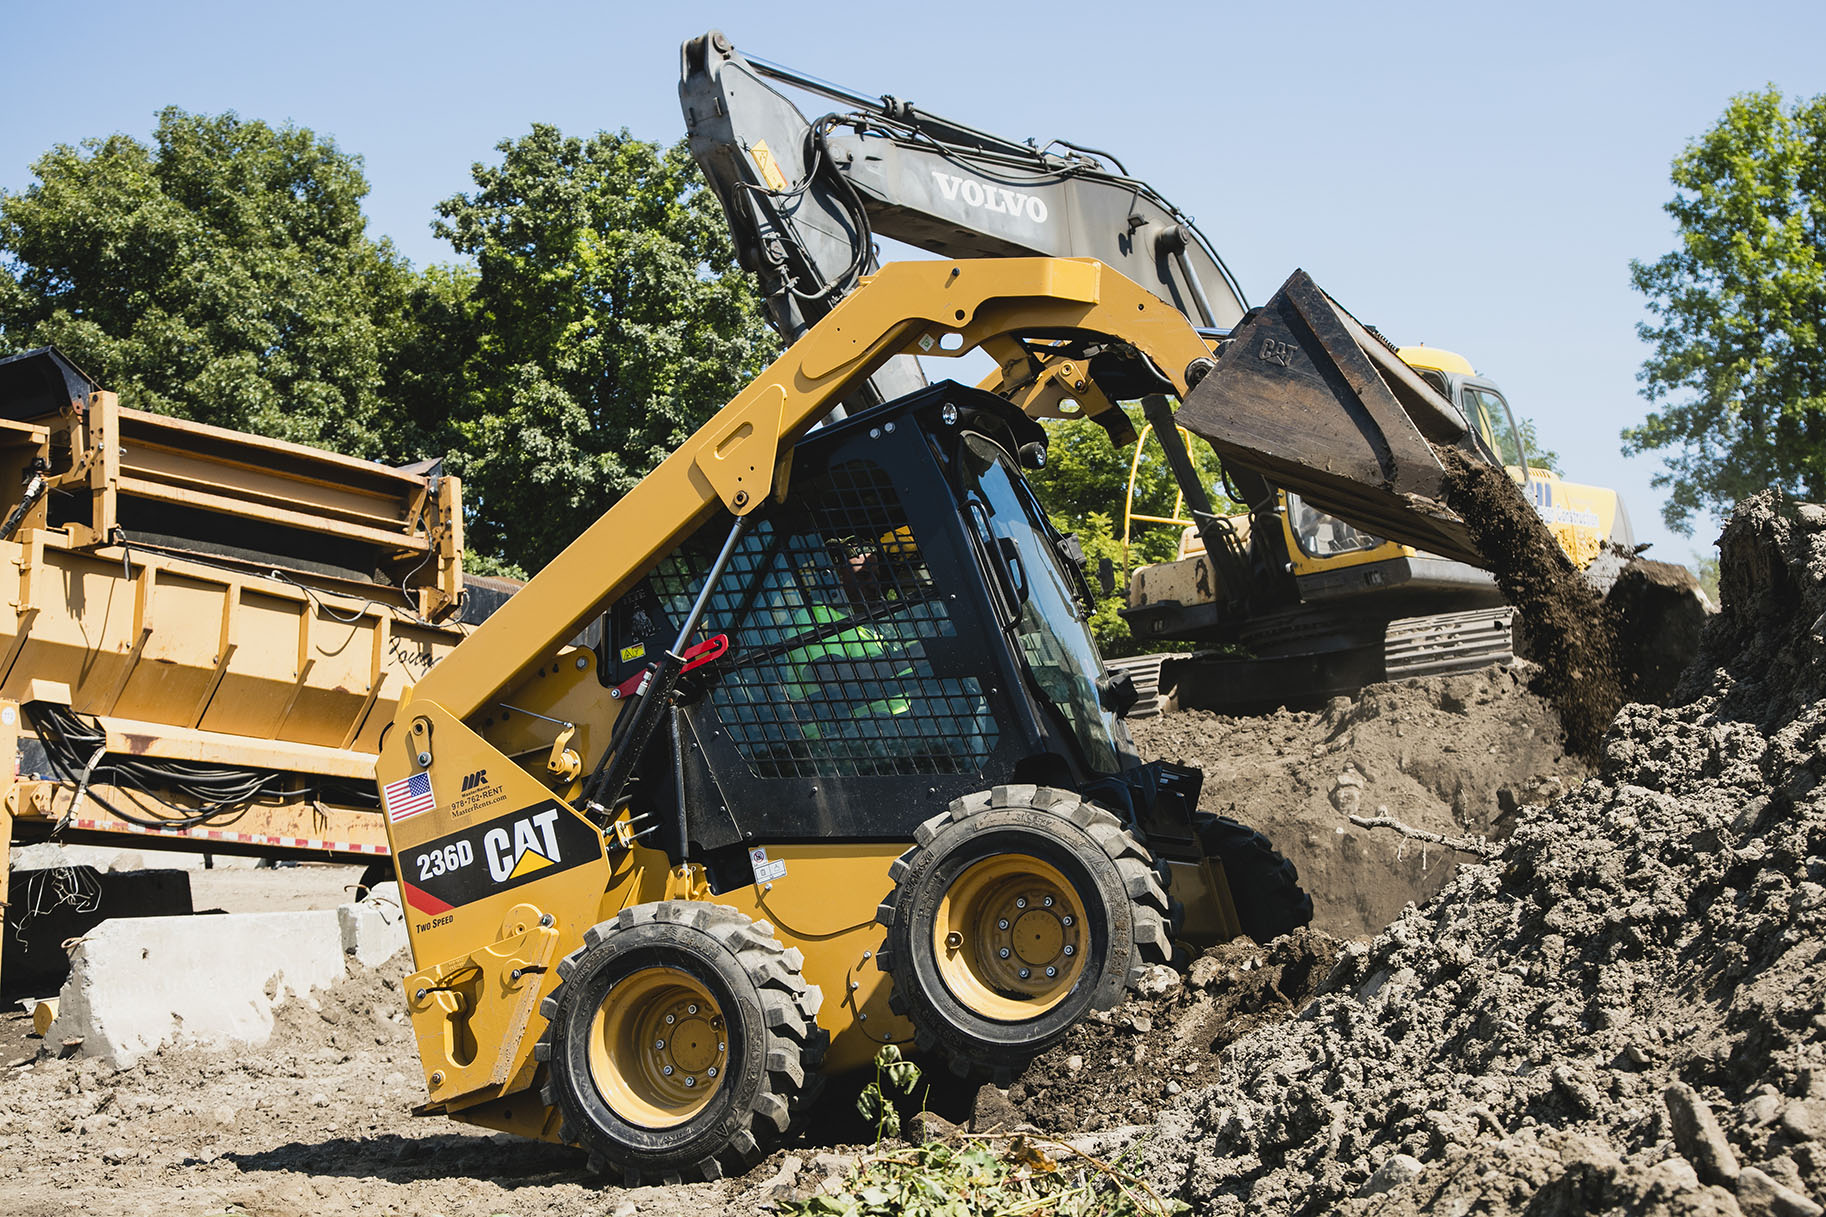 What to consider when choosing skid steer tires